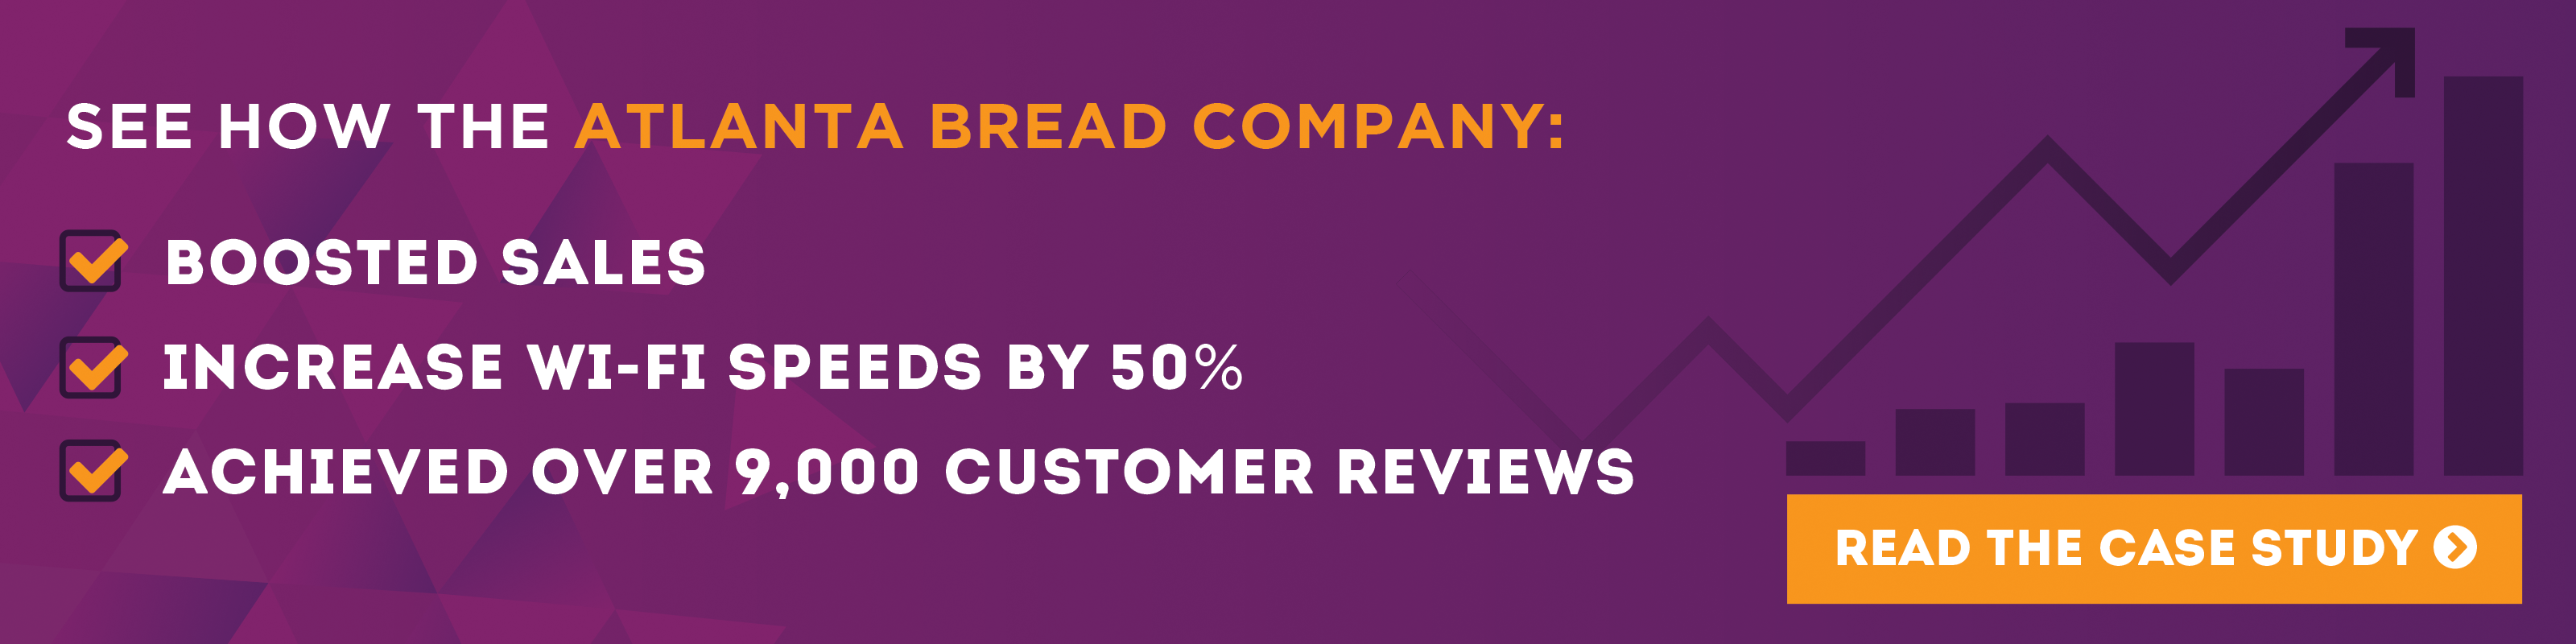 atlanta bread company case study